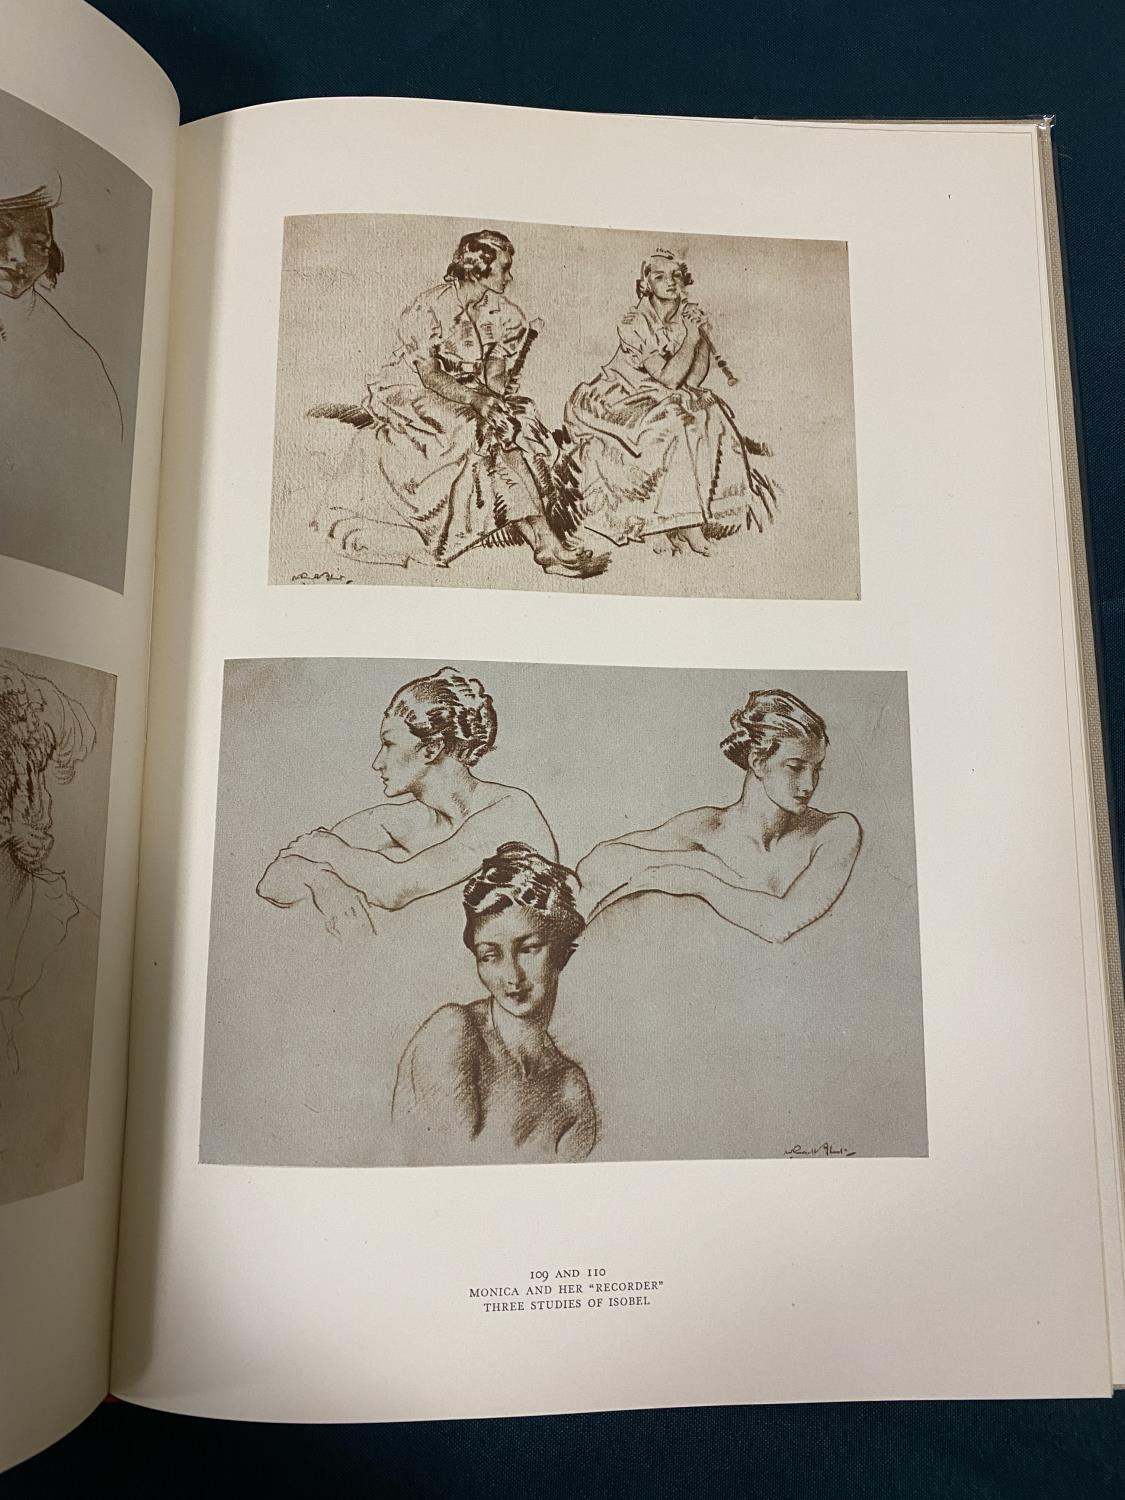 Flint, William Russell. Drawings, number 25 of 125 copies, signed by the artist, with an ORIGINAL - Image 3 of 5